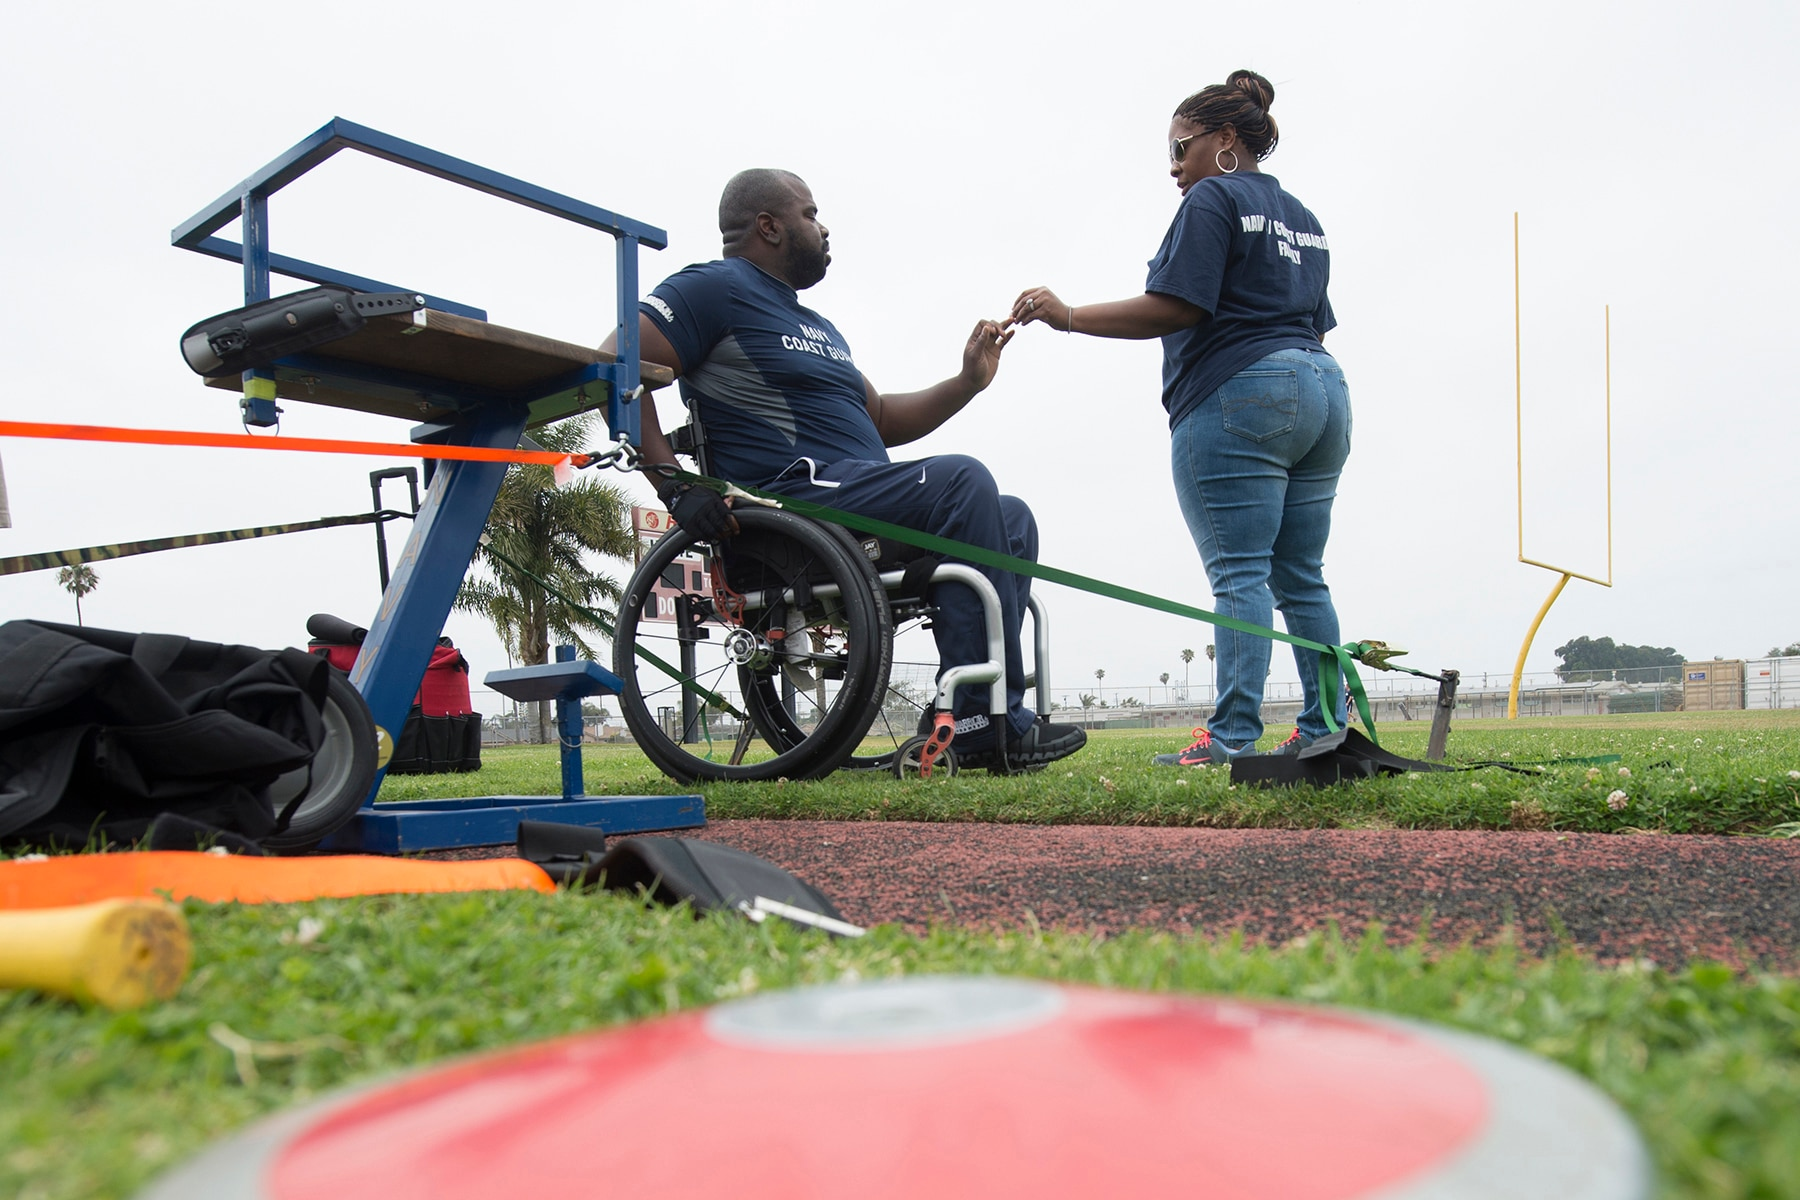 VA halts changes to caregiver stipends, pending a full program review